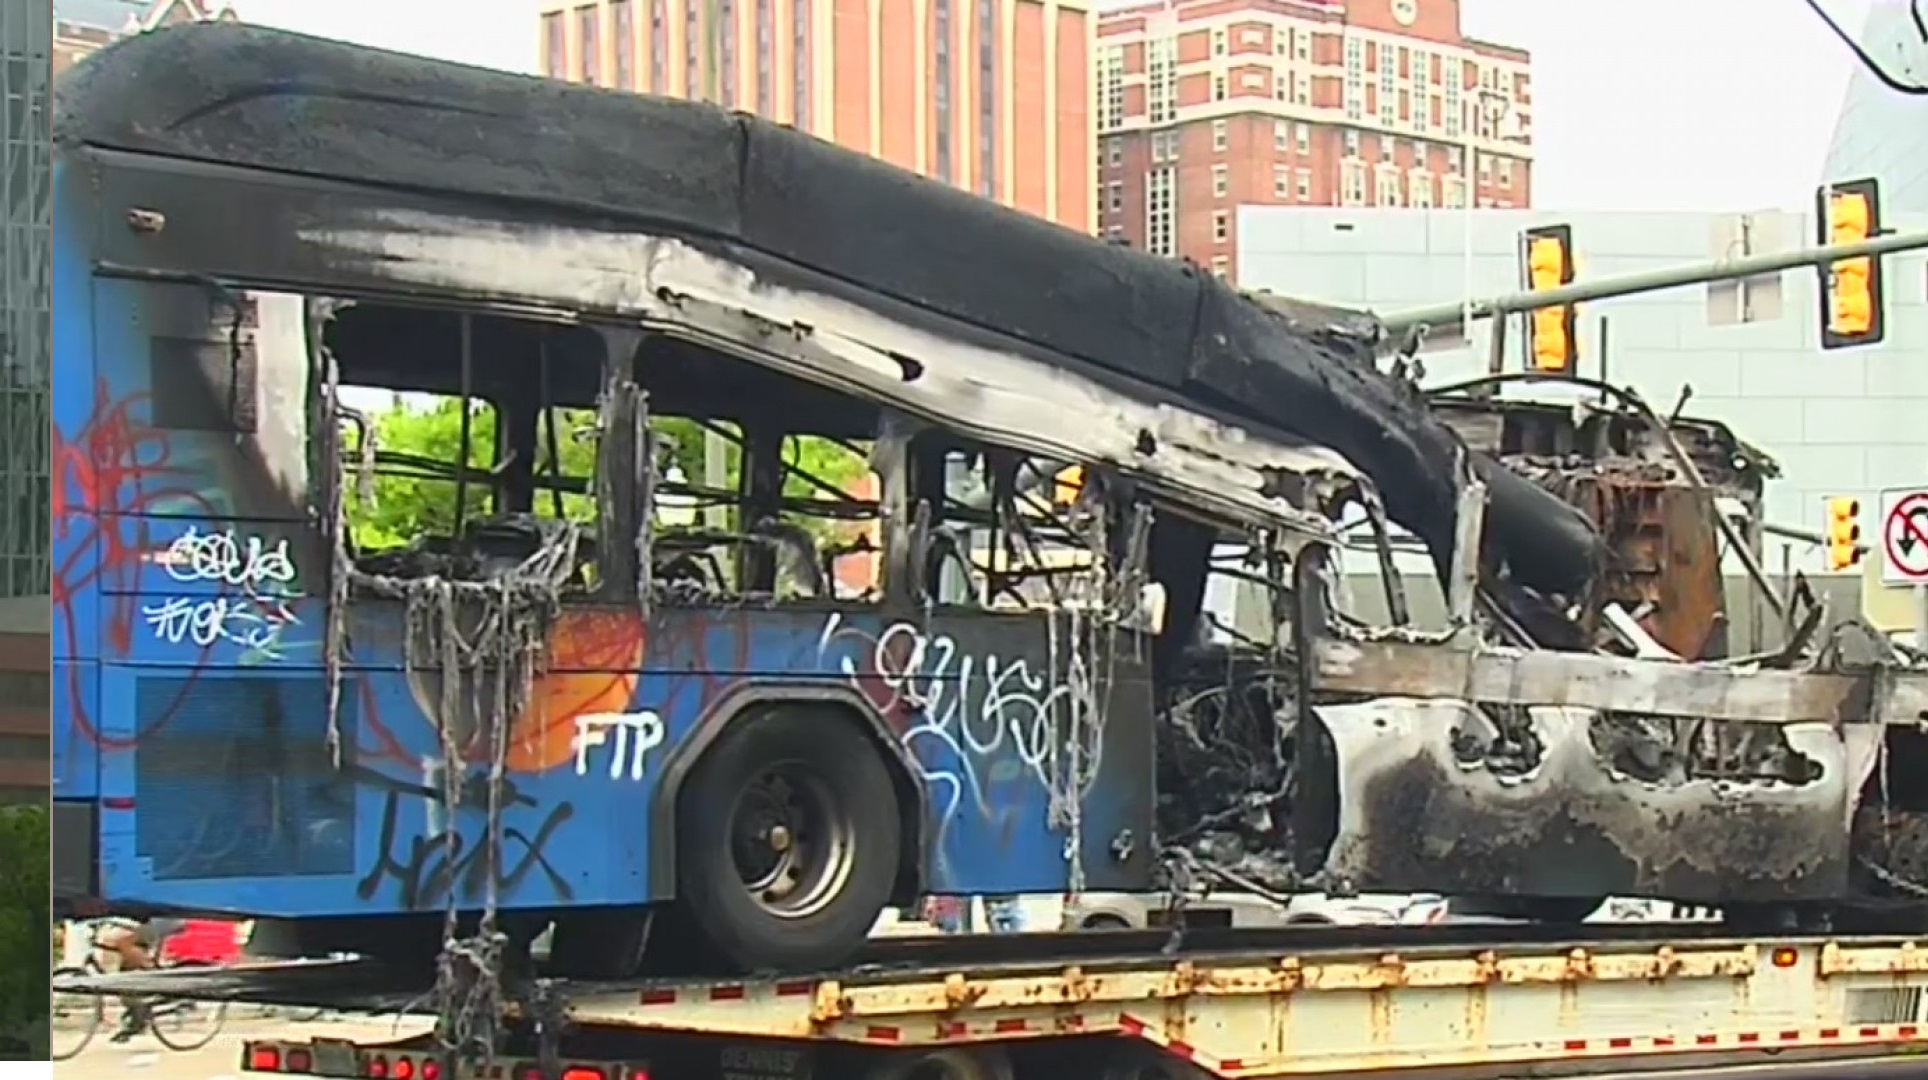 A GRTC Pulse bus was set on fire at the intersection of West Broad Street and Belvidere Street during the protest in Richmond on Friday, May 29.